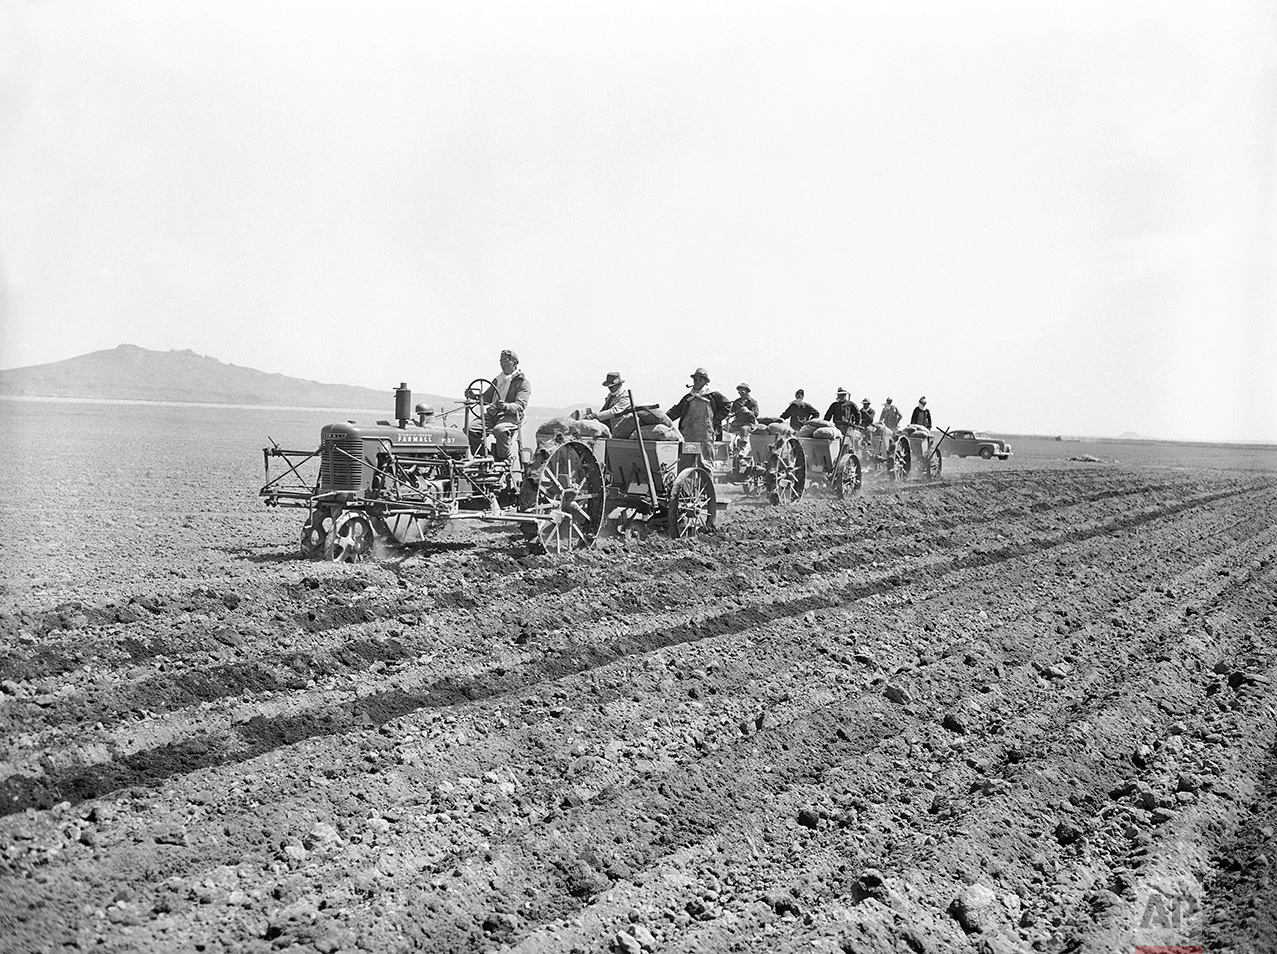 Using light tractors, Japanese residents of their Relocation Center at Tule Lake  California May 22, 1943, begin planting potatoes in the several hundred acres of fertile soil of reclaimed old Tule Lake  (stet). (AP Photo)